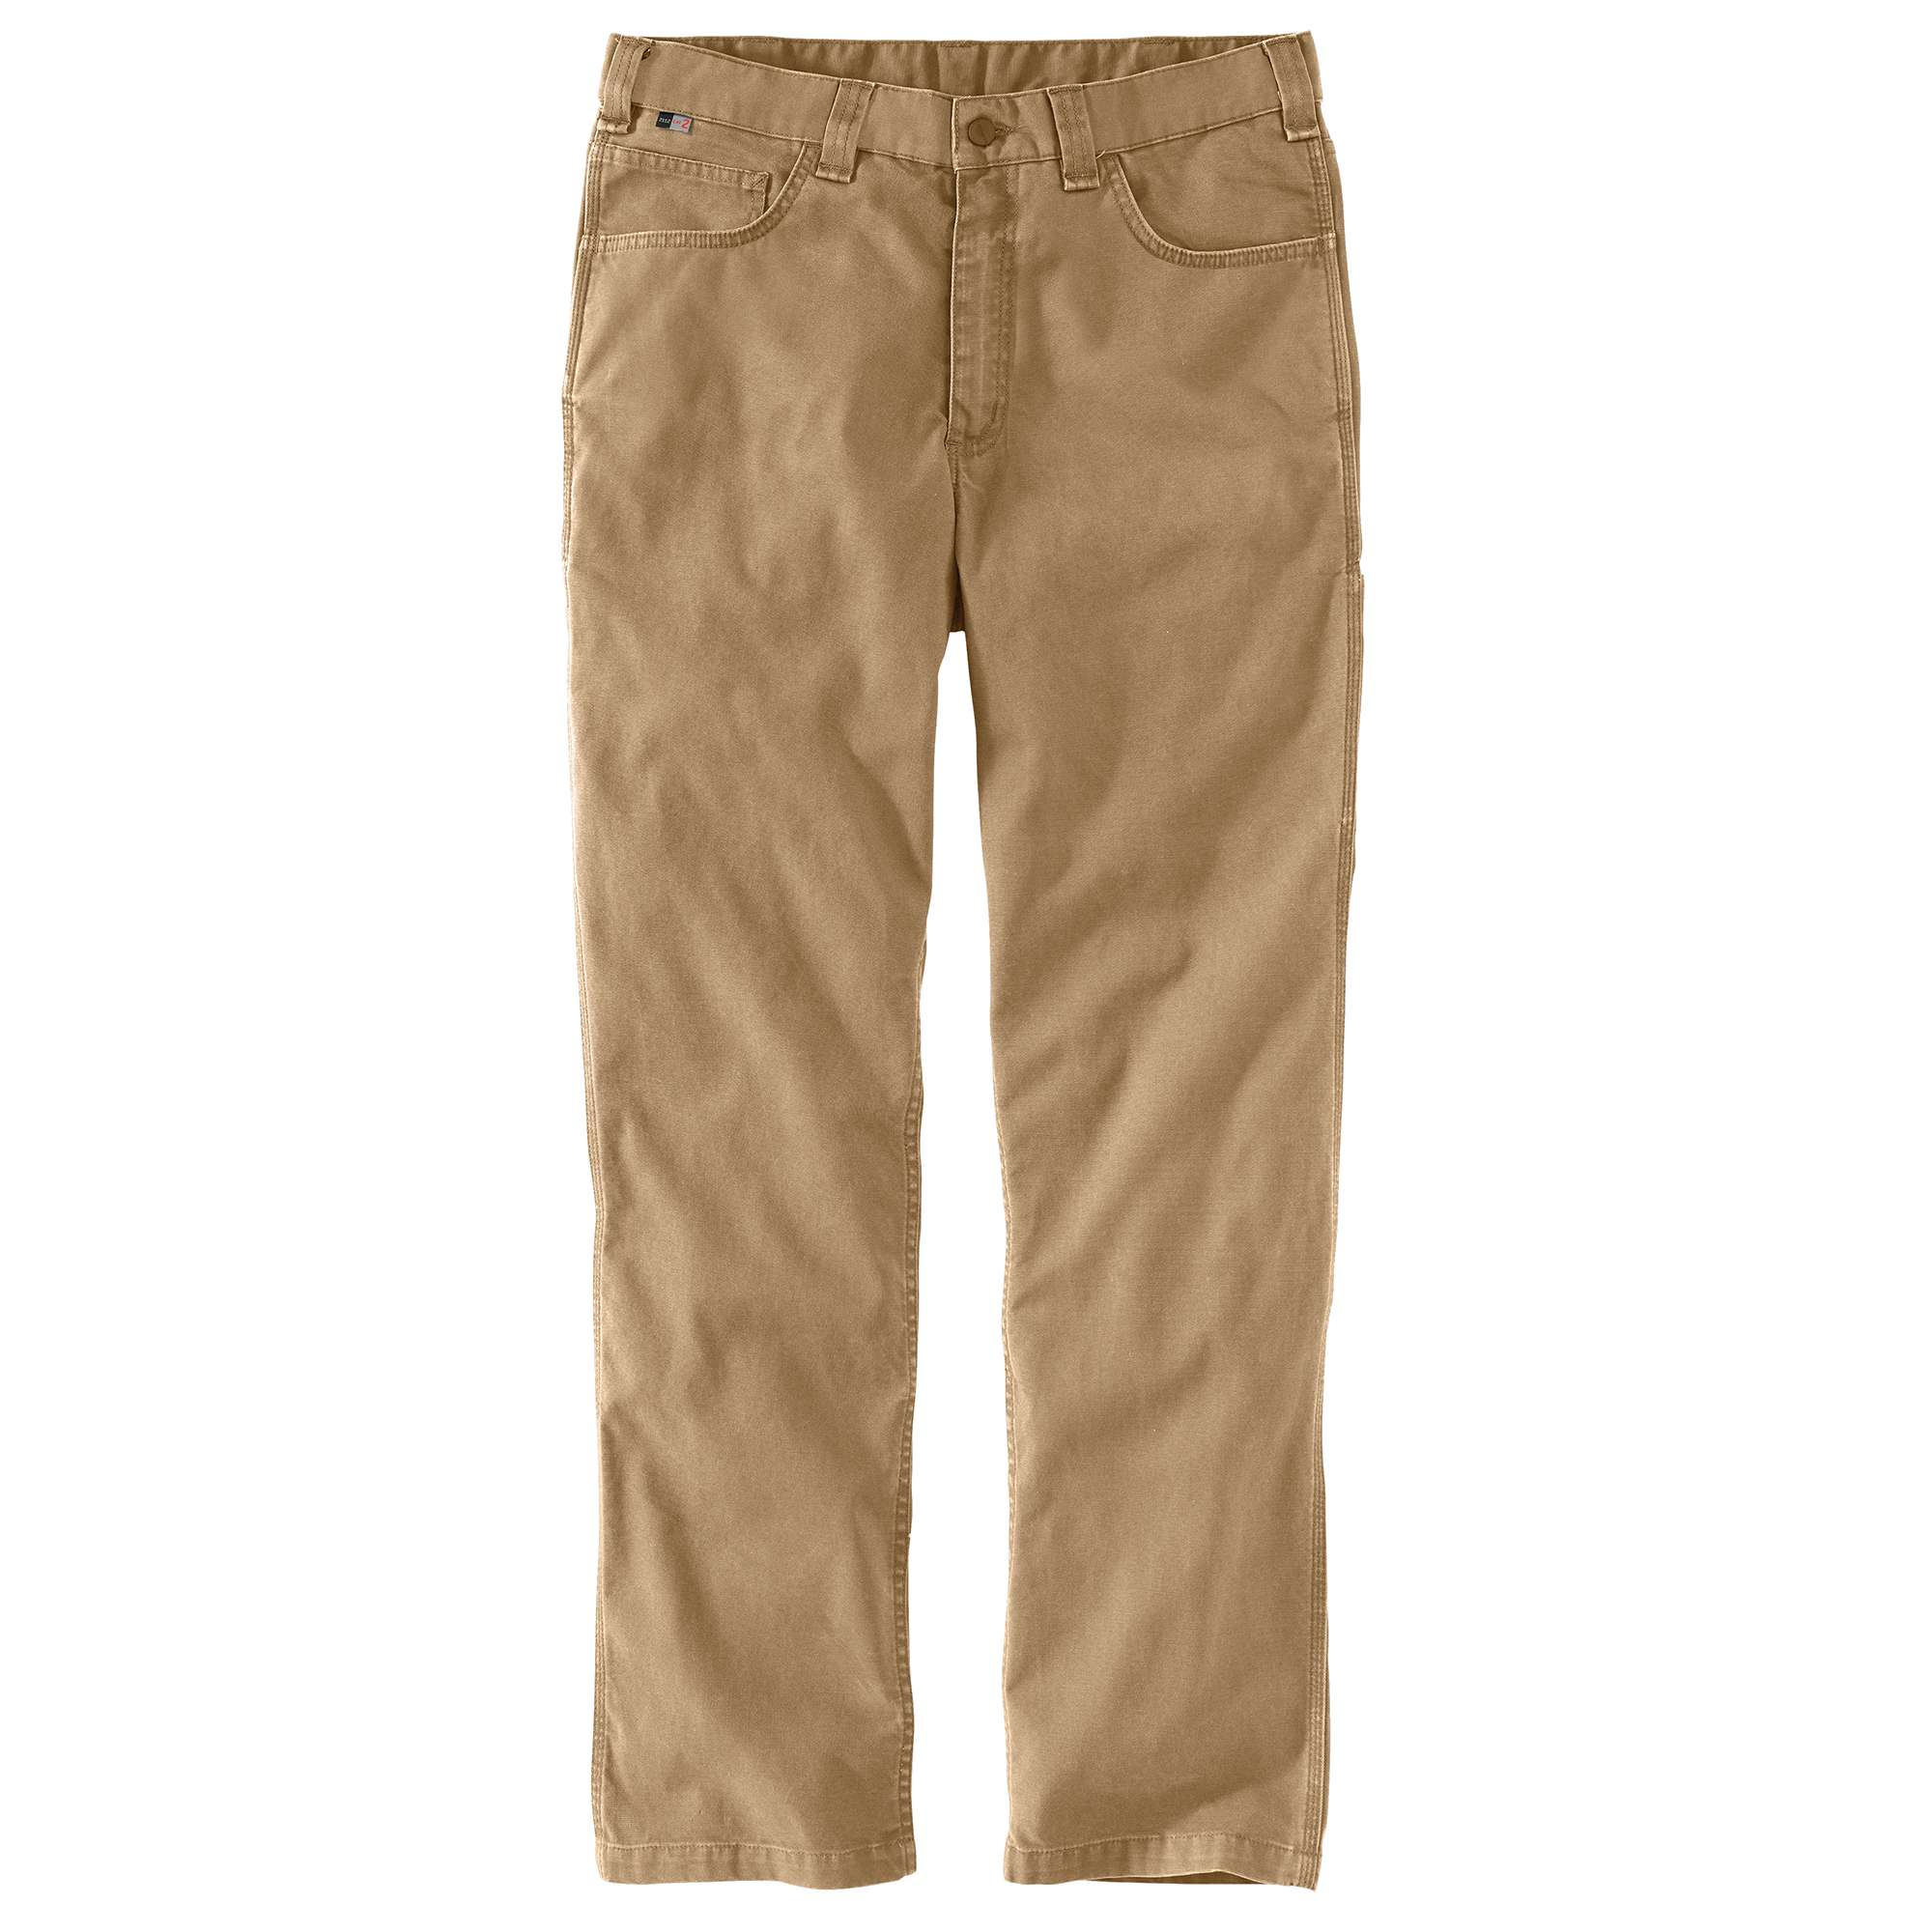 Carhartt Flame-Resistant Rugged Flex Relaxed Fit Rigby Pant